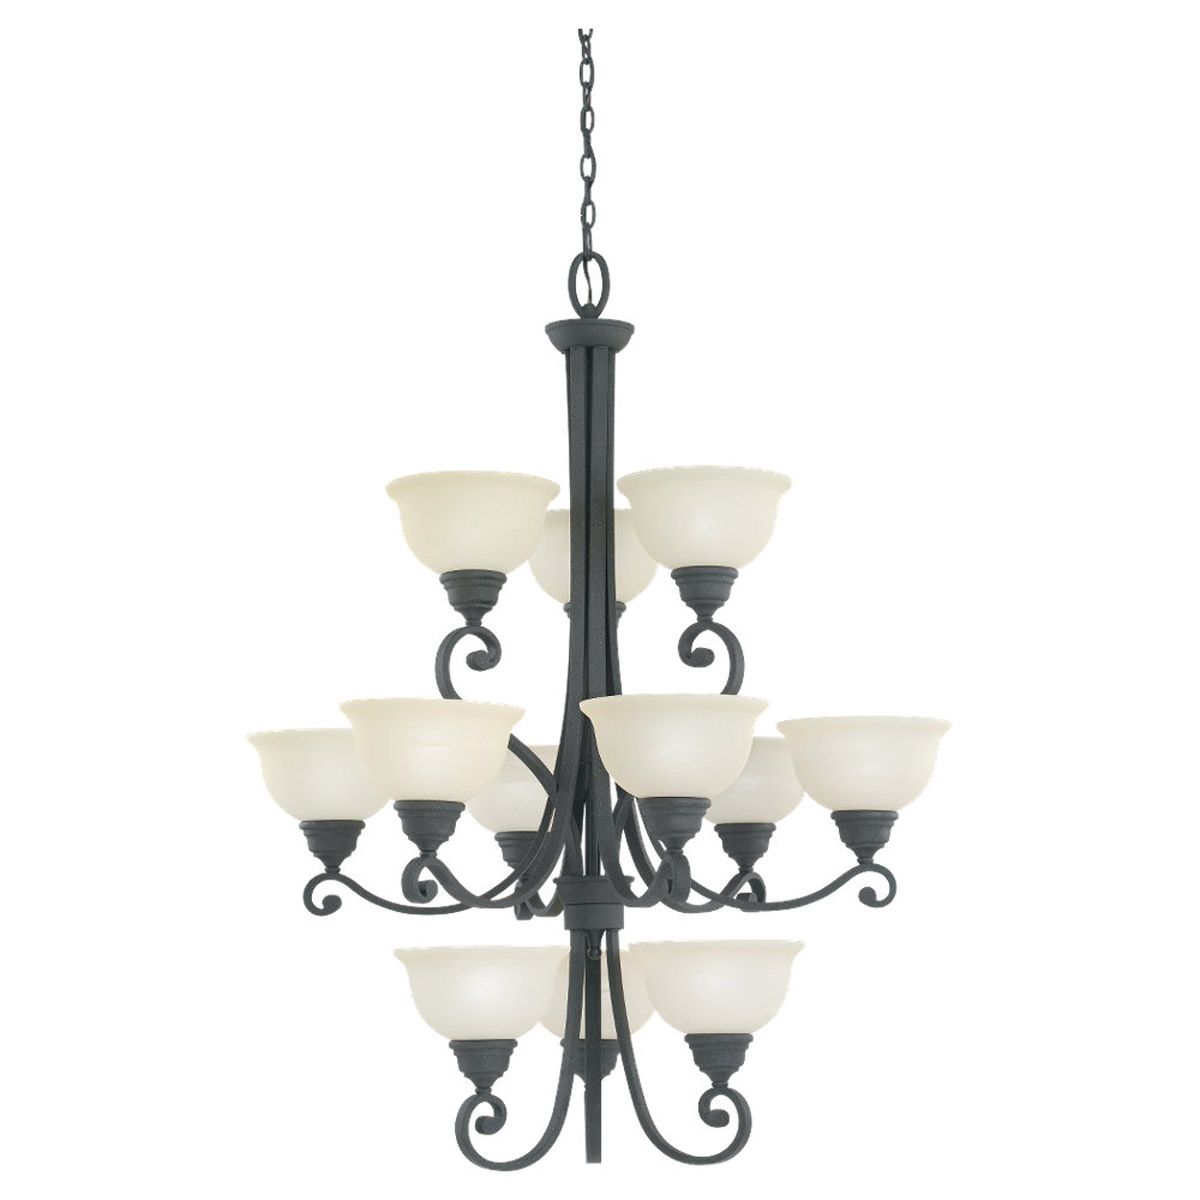 Sea Gull Lighting Serenity 12 Light Fluorescent Chandelier in Weathered Iron 39260BLE-07